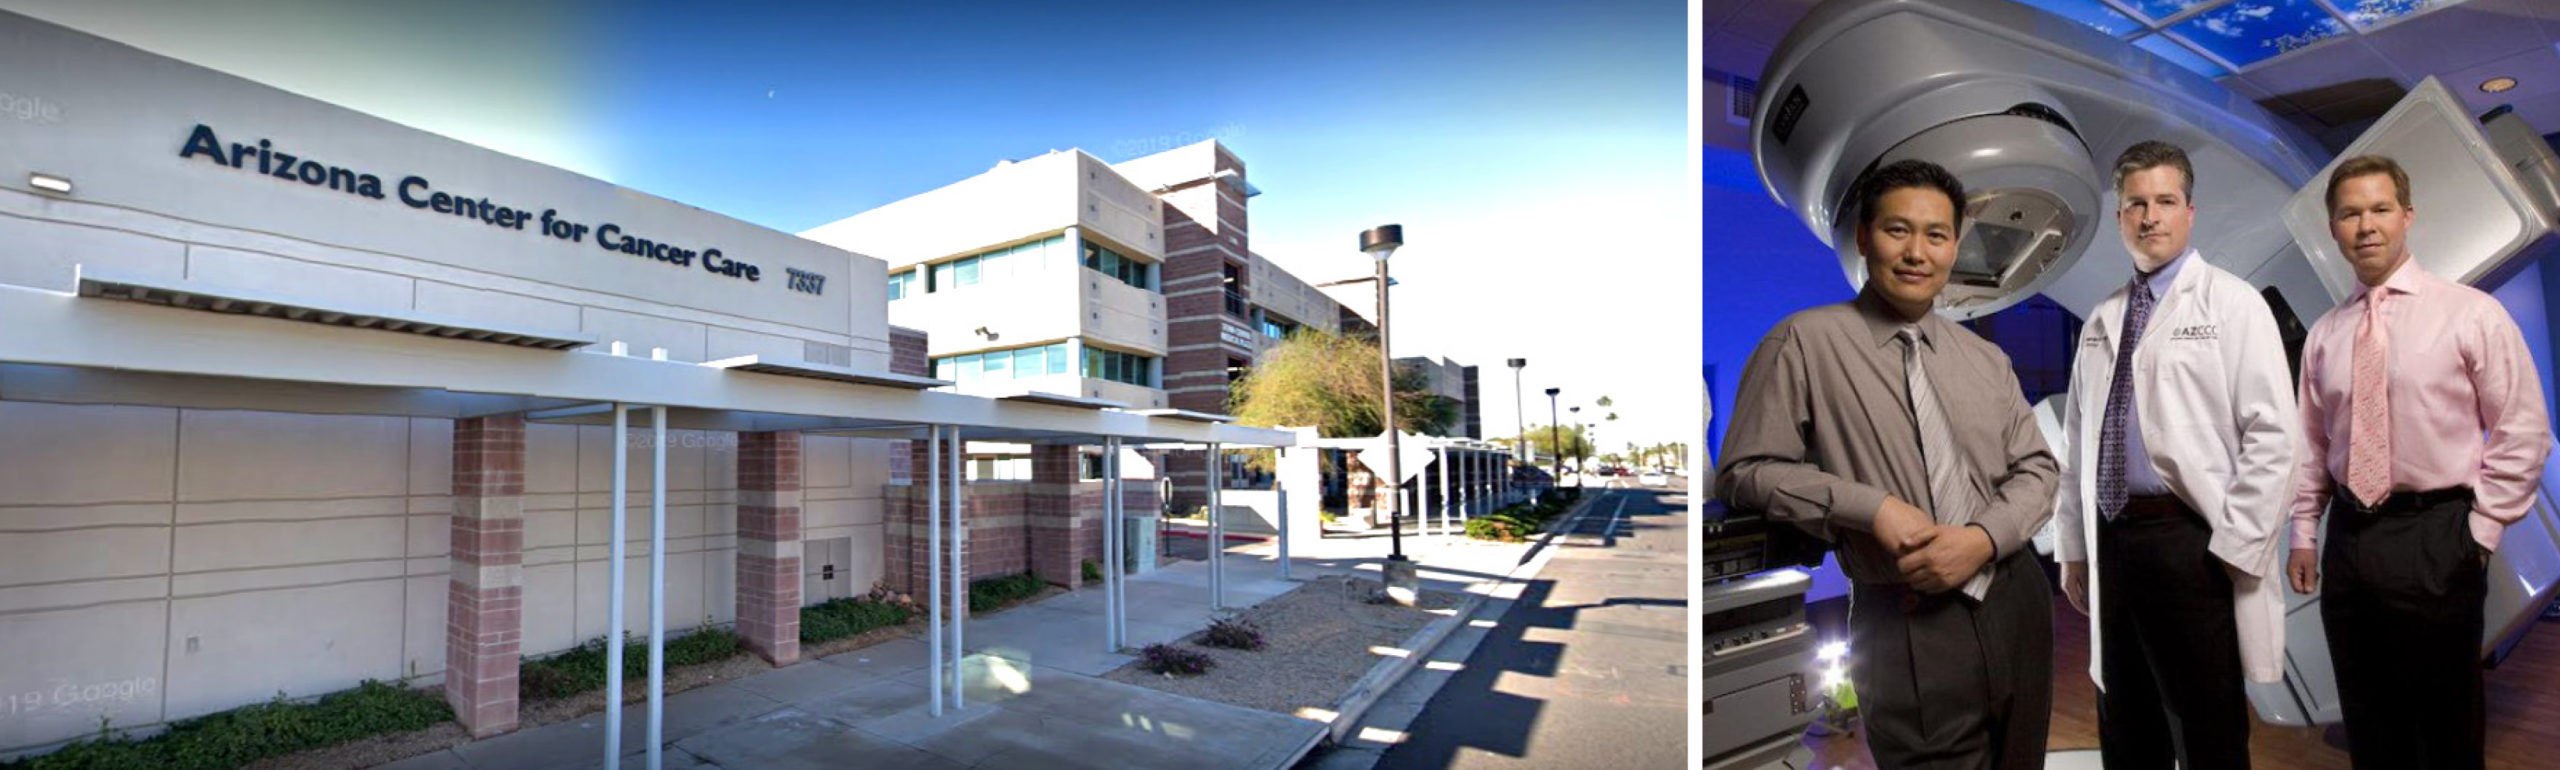 Arizona Center for Cancer Care is one of the best!